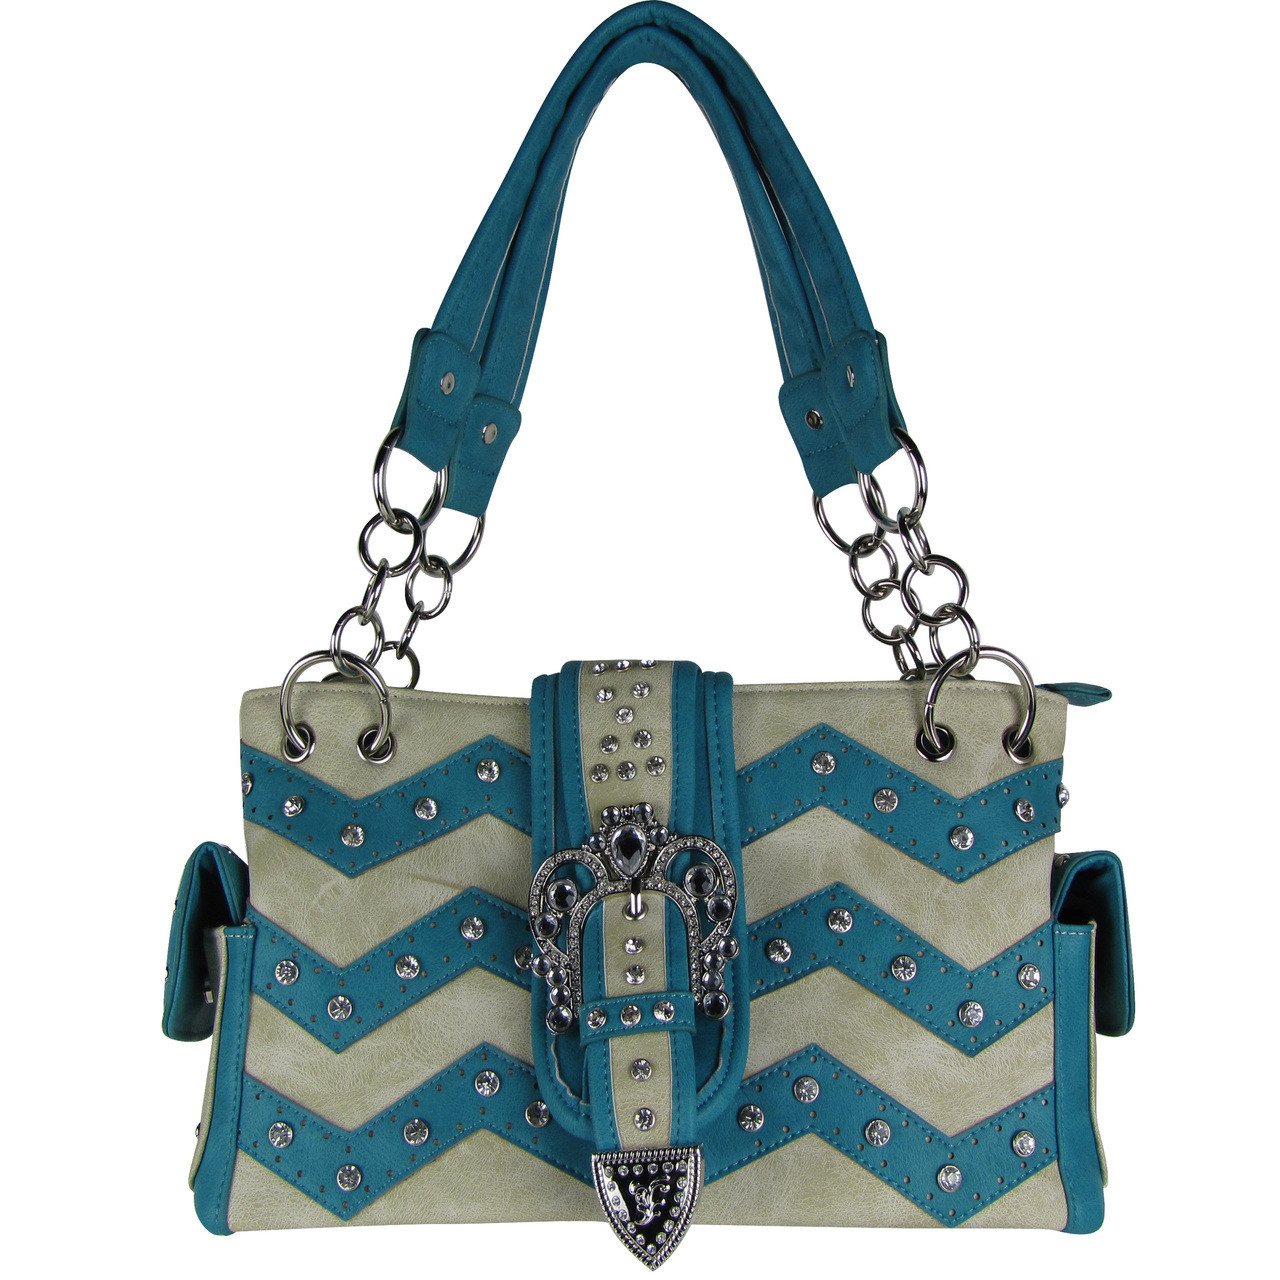 TURQUOISE RHINESTONE BUCKLE LOOK SHOULDER HANDBAG HB1-939WVTRQ